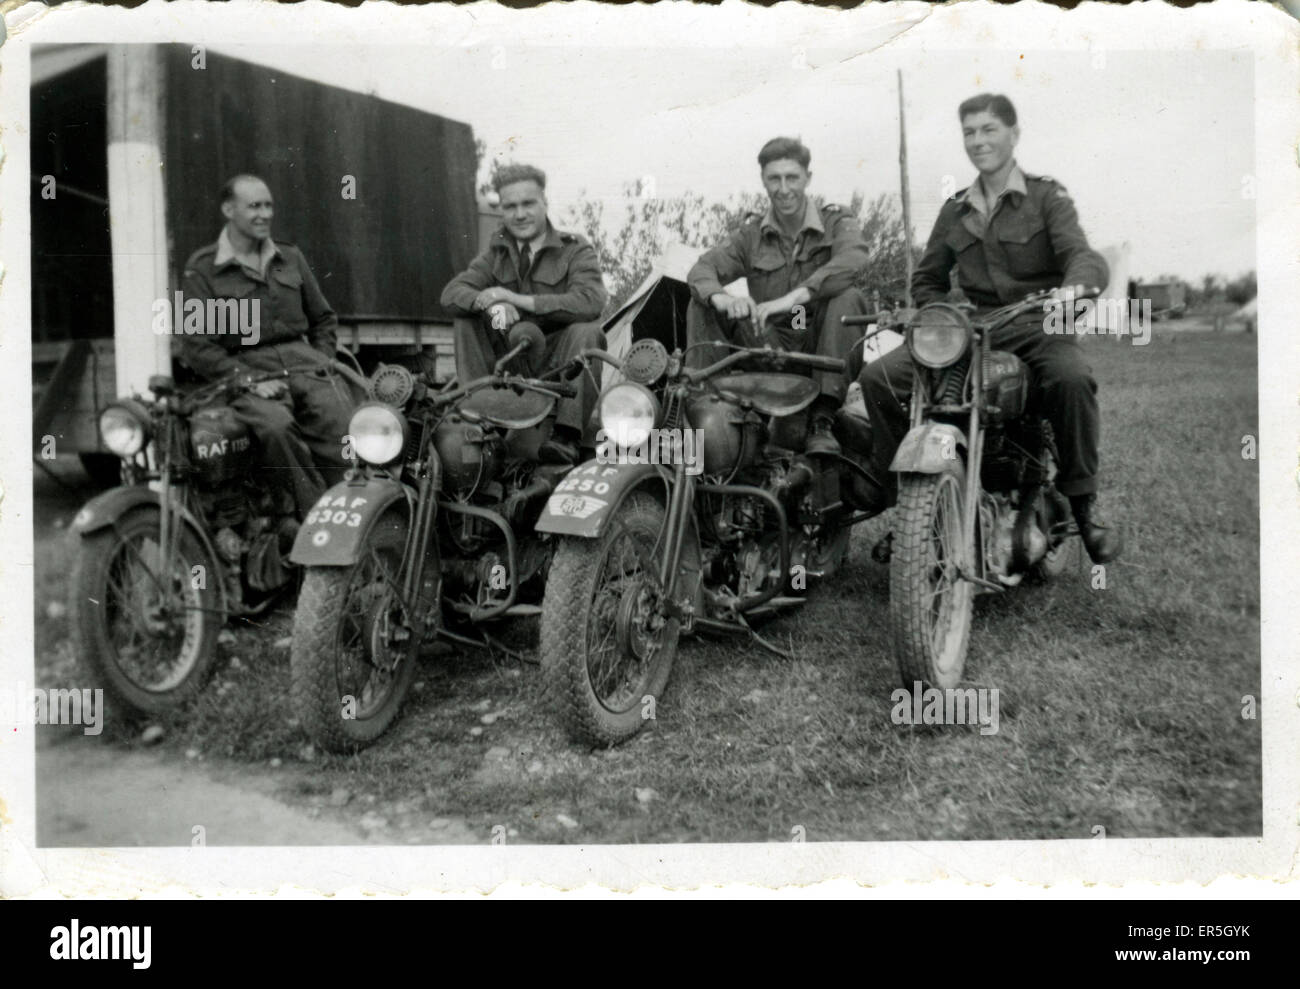 World War 2 RAF Motorcycles, England.  1940s - Stock Image